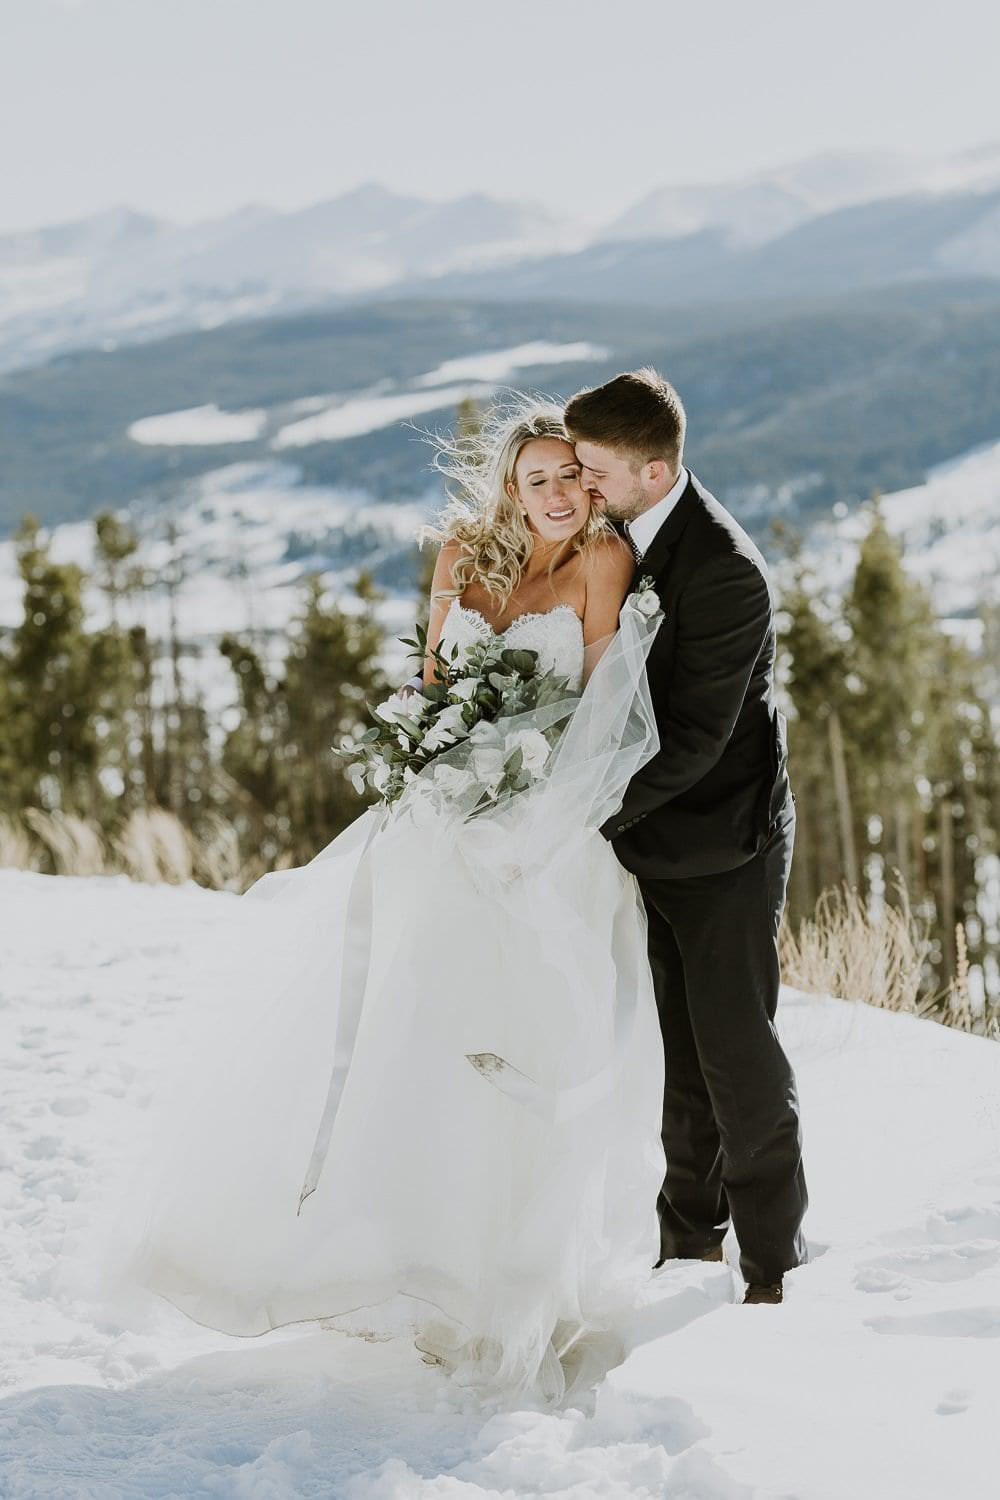 Intimate Winter Mountain Elopement In The Rockies Casey